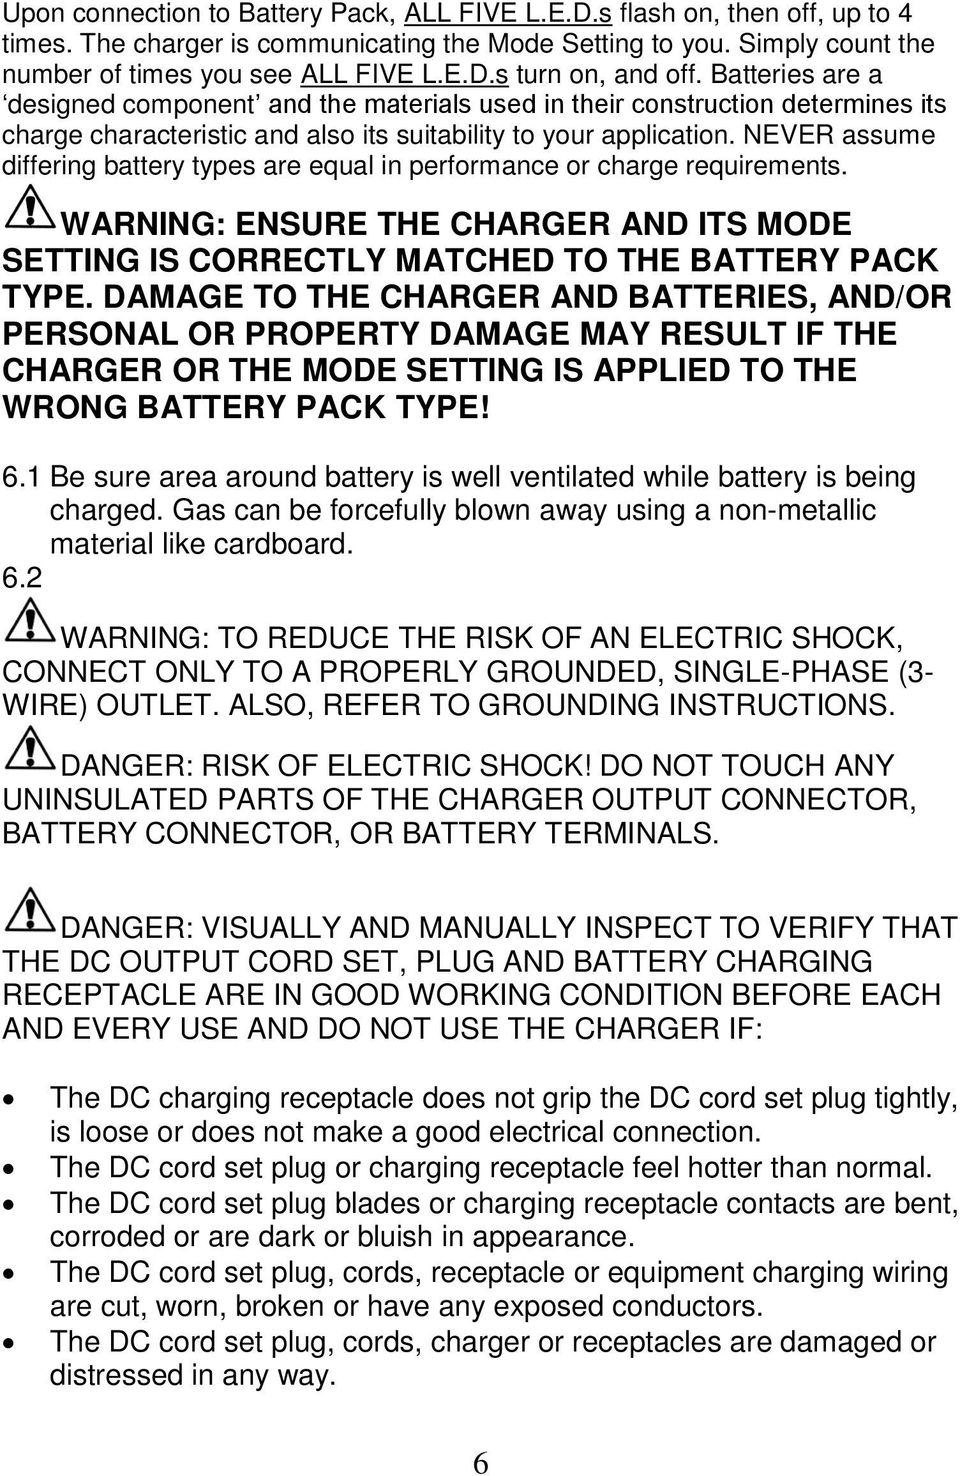 medium resolution of never assume differing battery types are equal in performance or charge requirements warning ensure